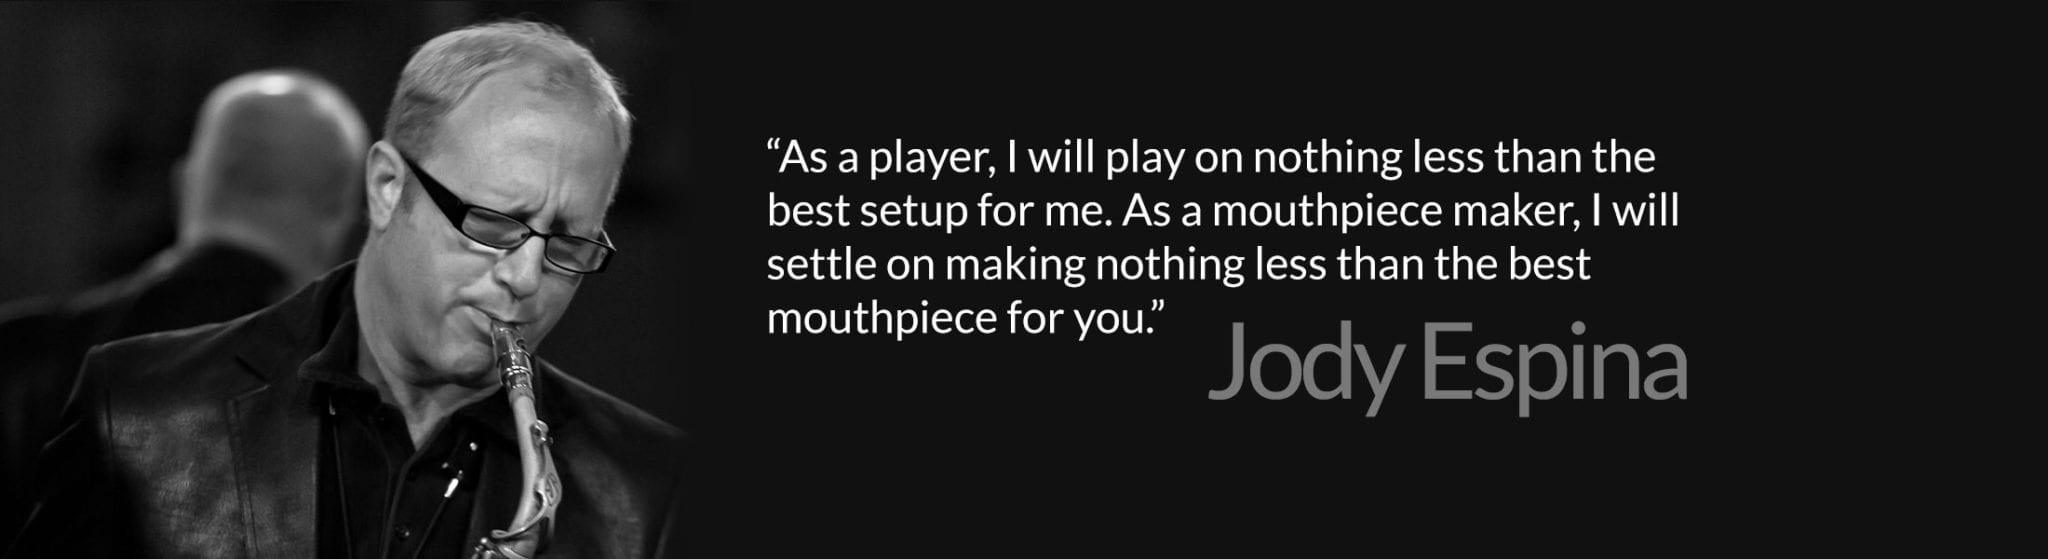 """As a player, I will play on nothing less than the best setup for me. As a mouthpiece maker, I will settle on making nothing less than the best mouthpiece for you."""